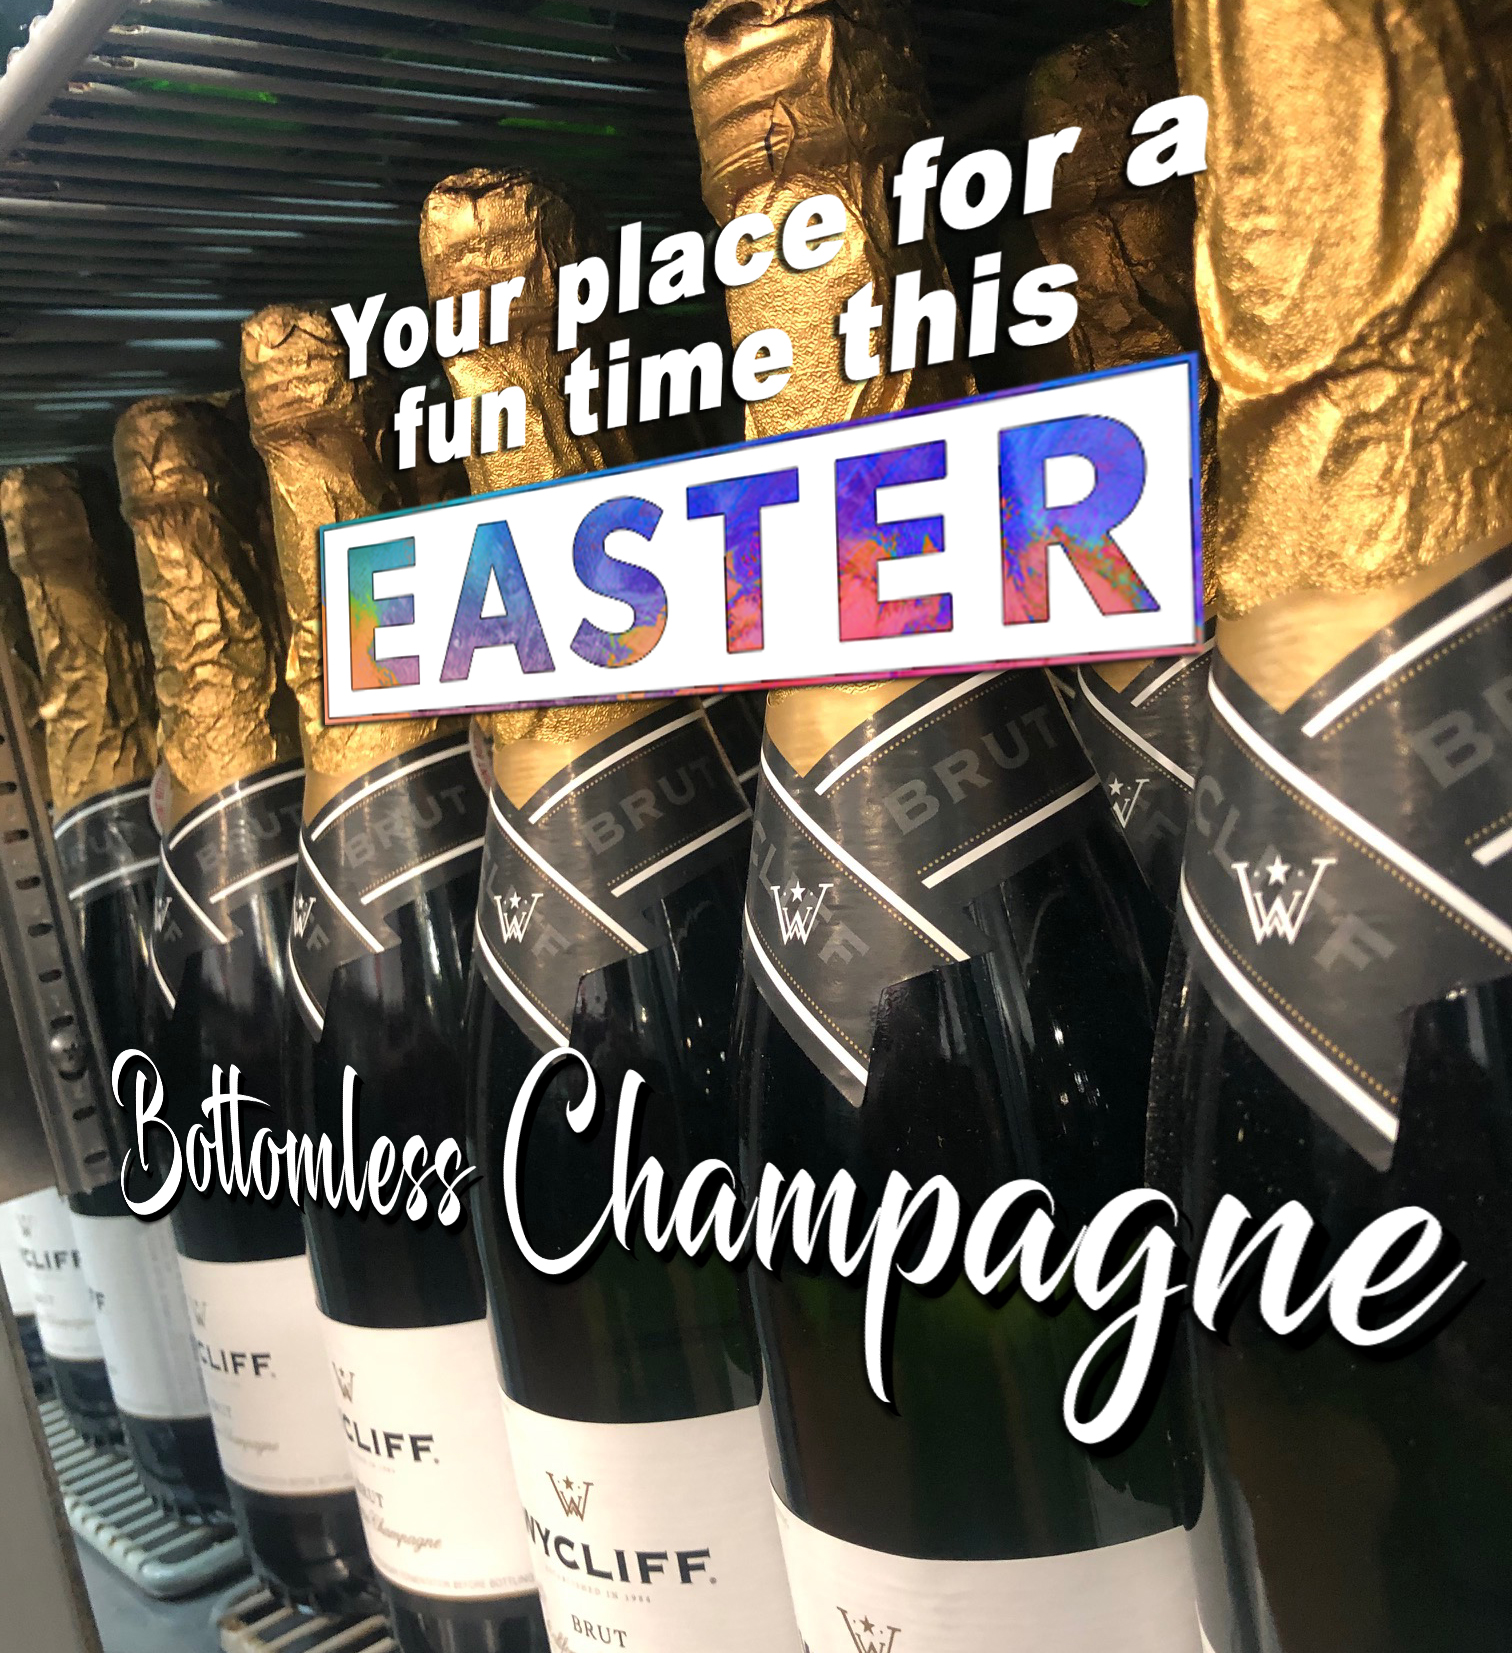 Your place for a fun time this EASTER with BOTTOMLESS CHAMPAGNE